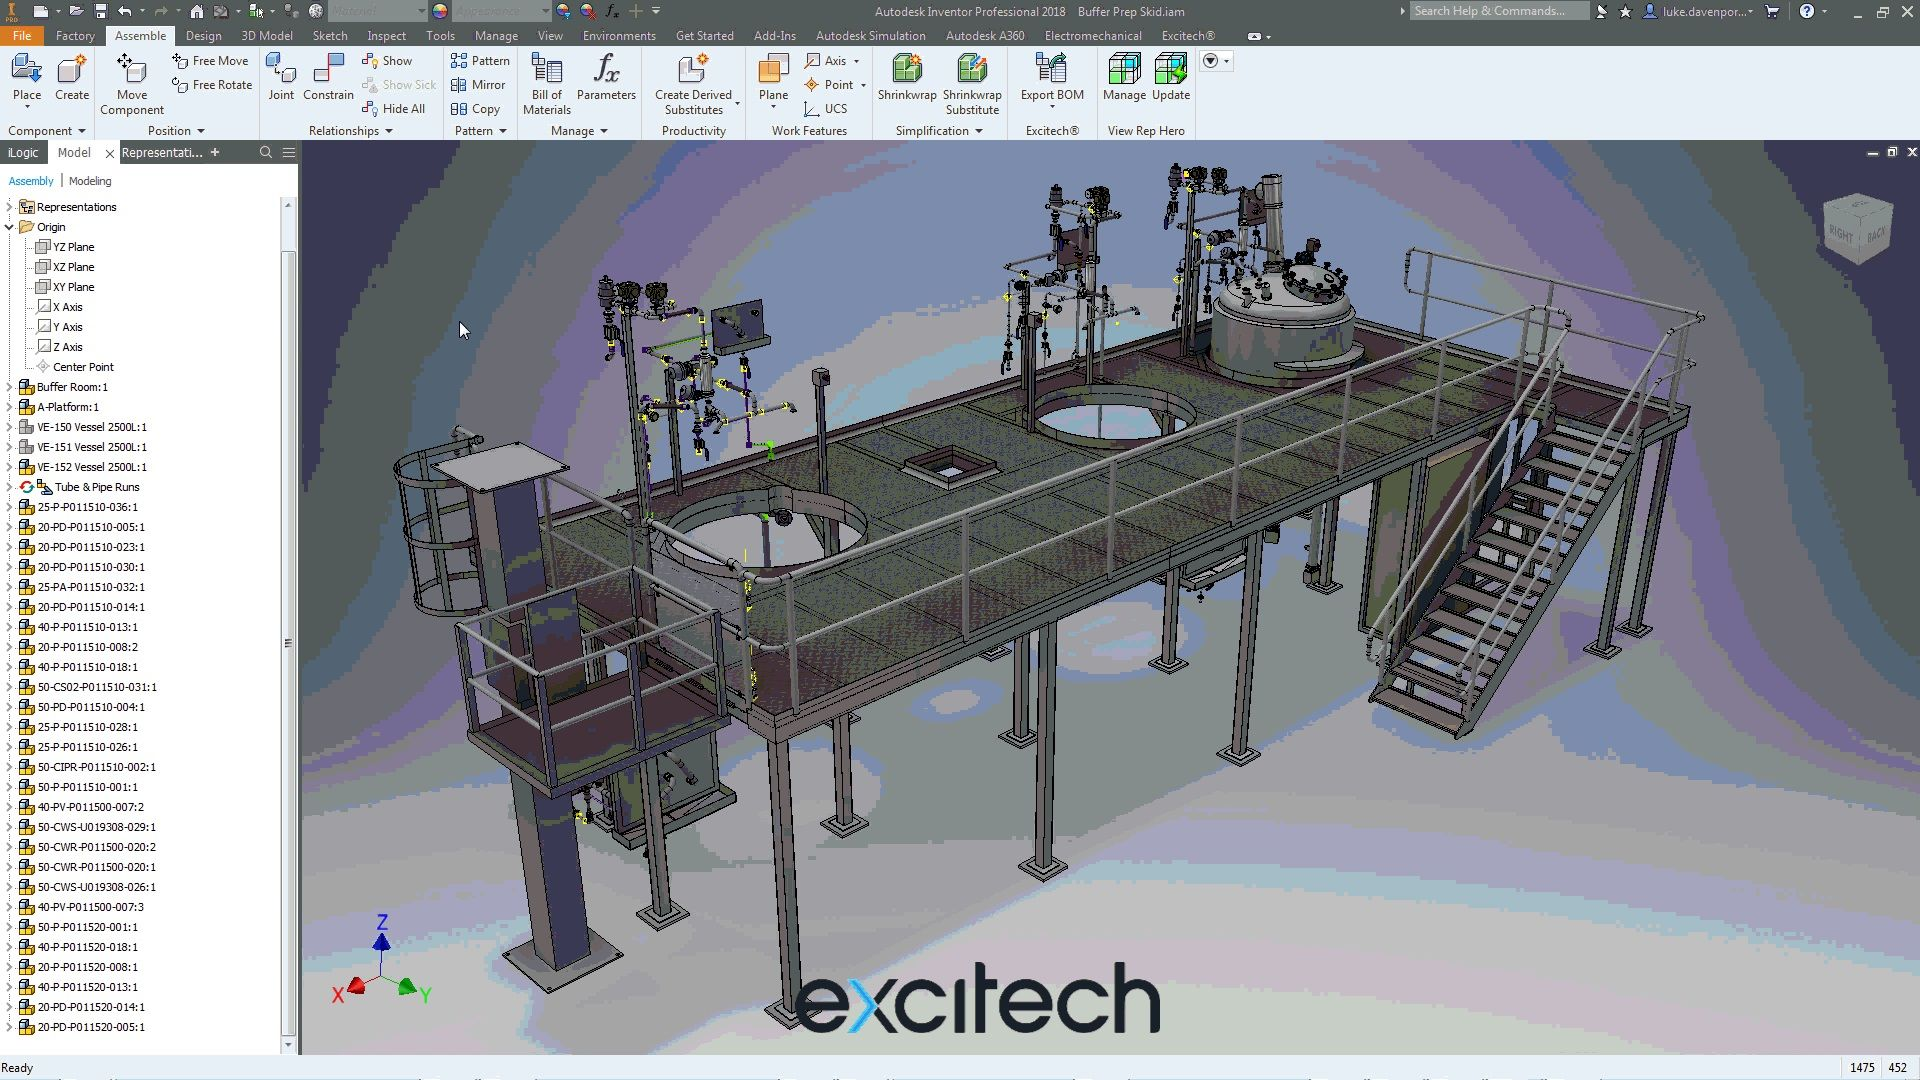 Design, visualize, and simulate factory equipment under